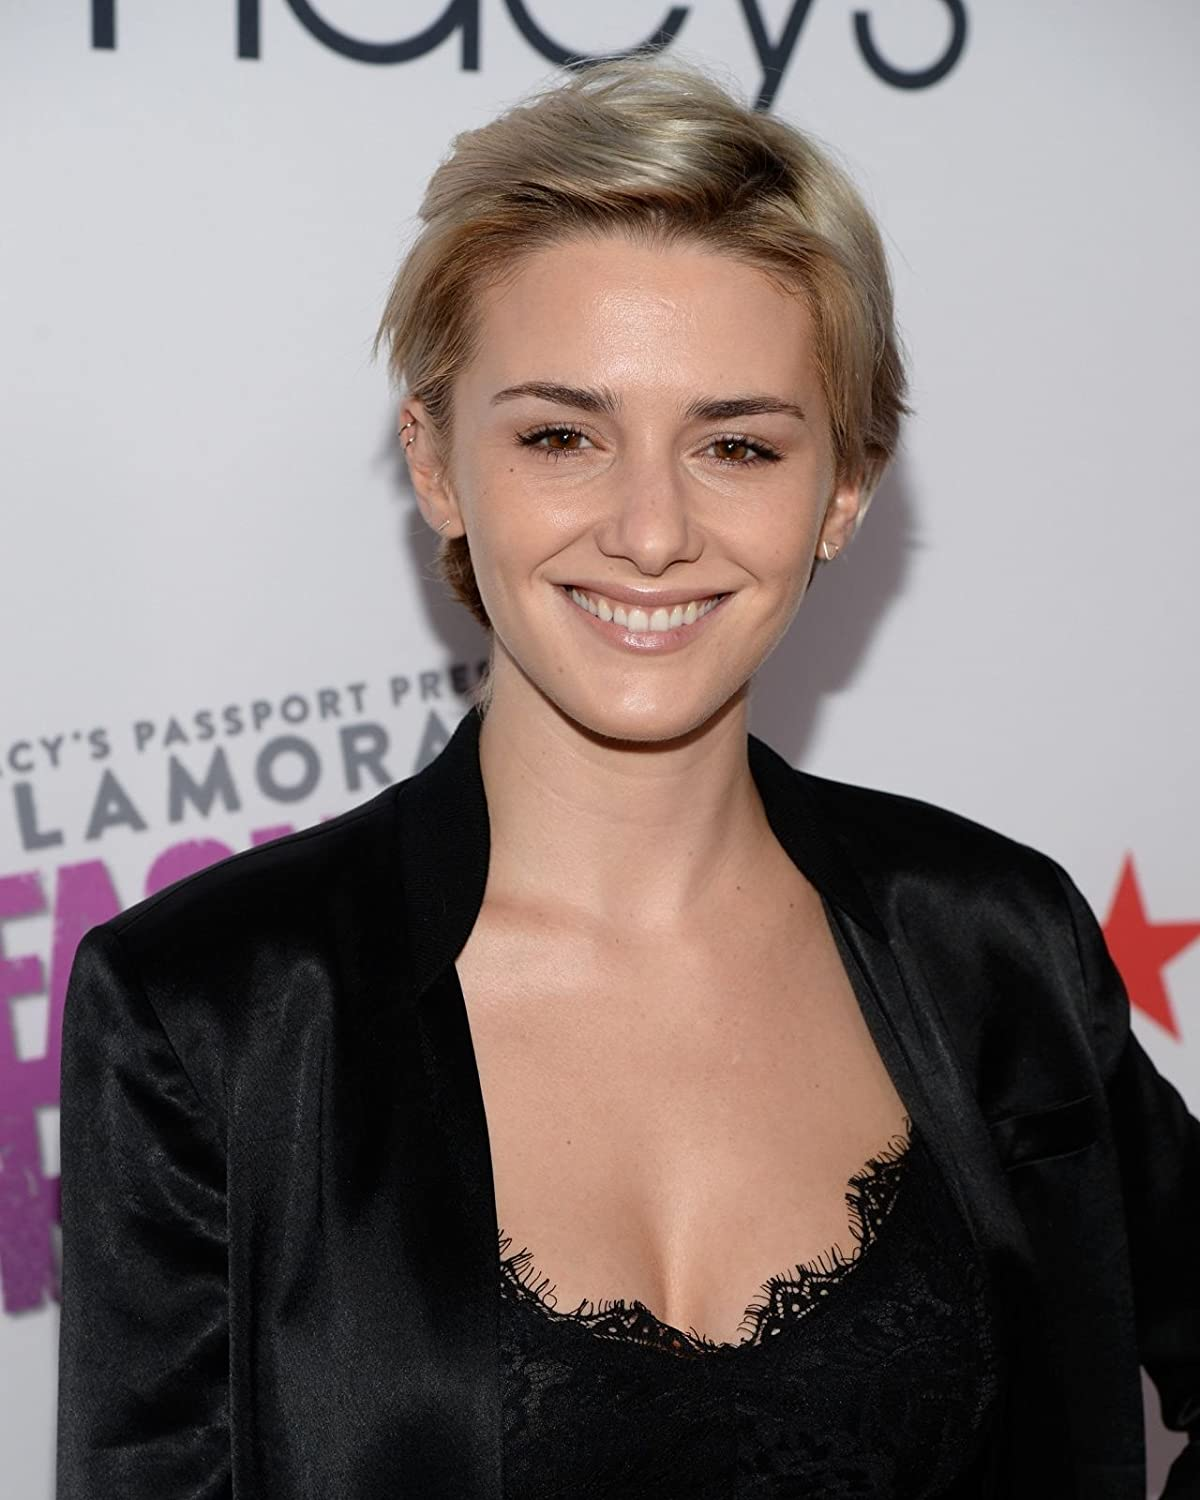 Video Addison Timlin naked (47 photos), Ass, Paparazzi, Boobs, cleavage 2015